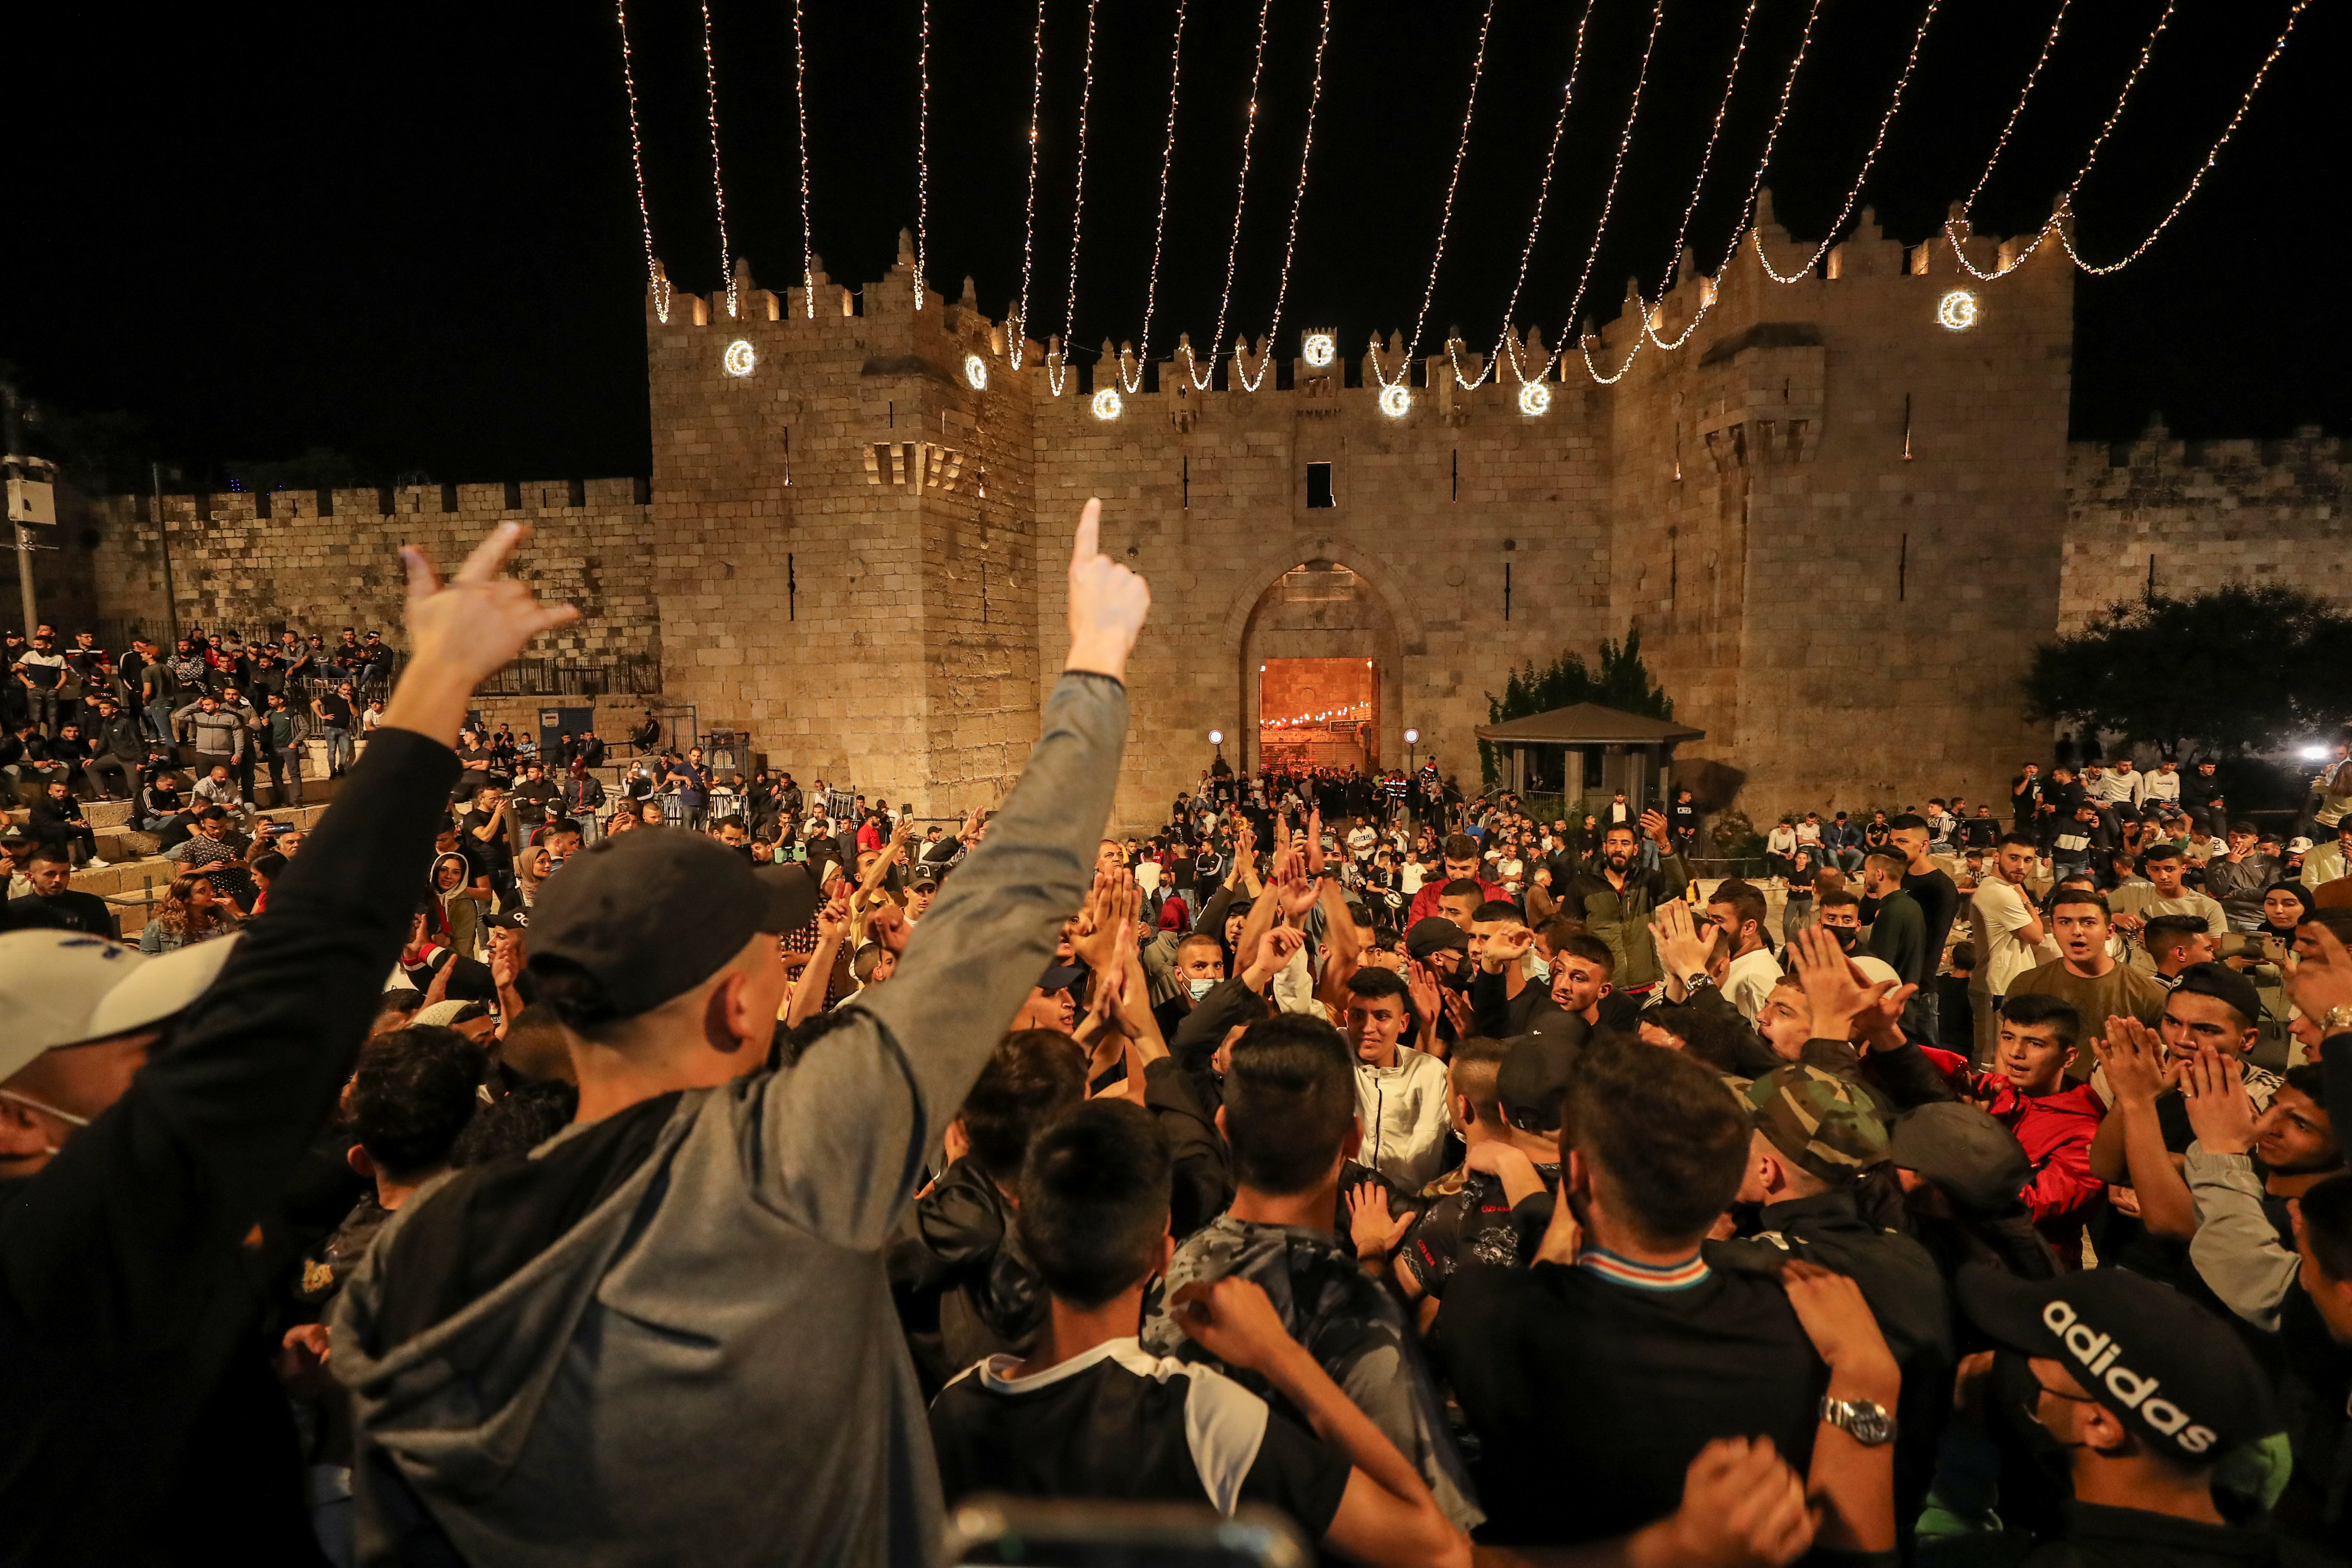 Palestinians celebrate outside Damascus Gate after the barriers that were put up by Israeli police are removed, allowing them to access the main square that has been the focus of a week of clashes around Jerusalem's Old City April 25, 2021. REUTERS/Ammar Awad